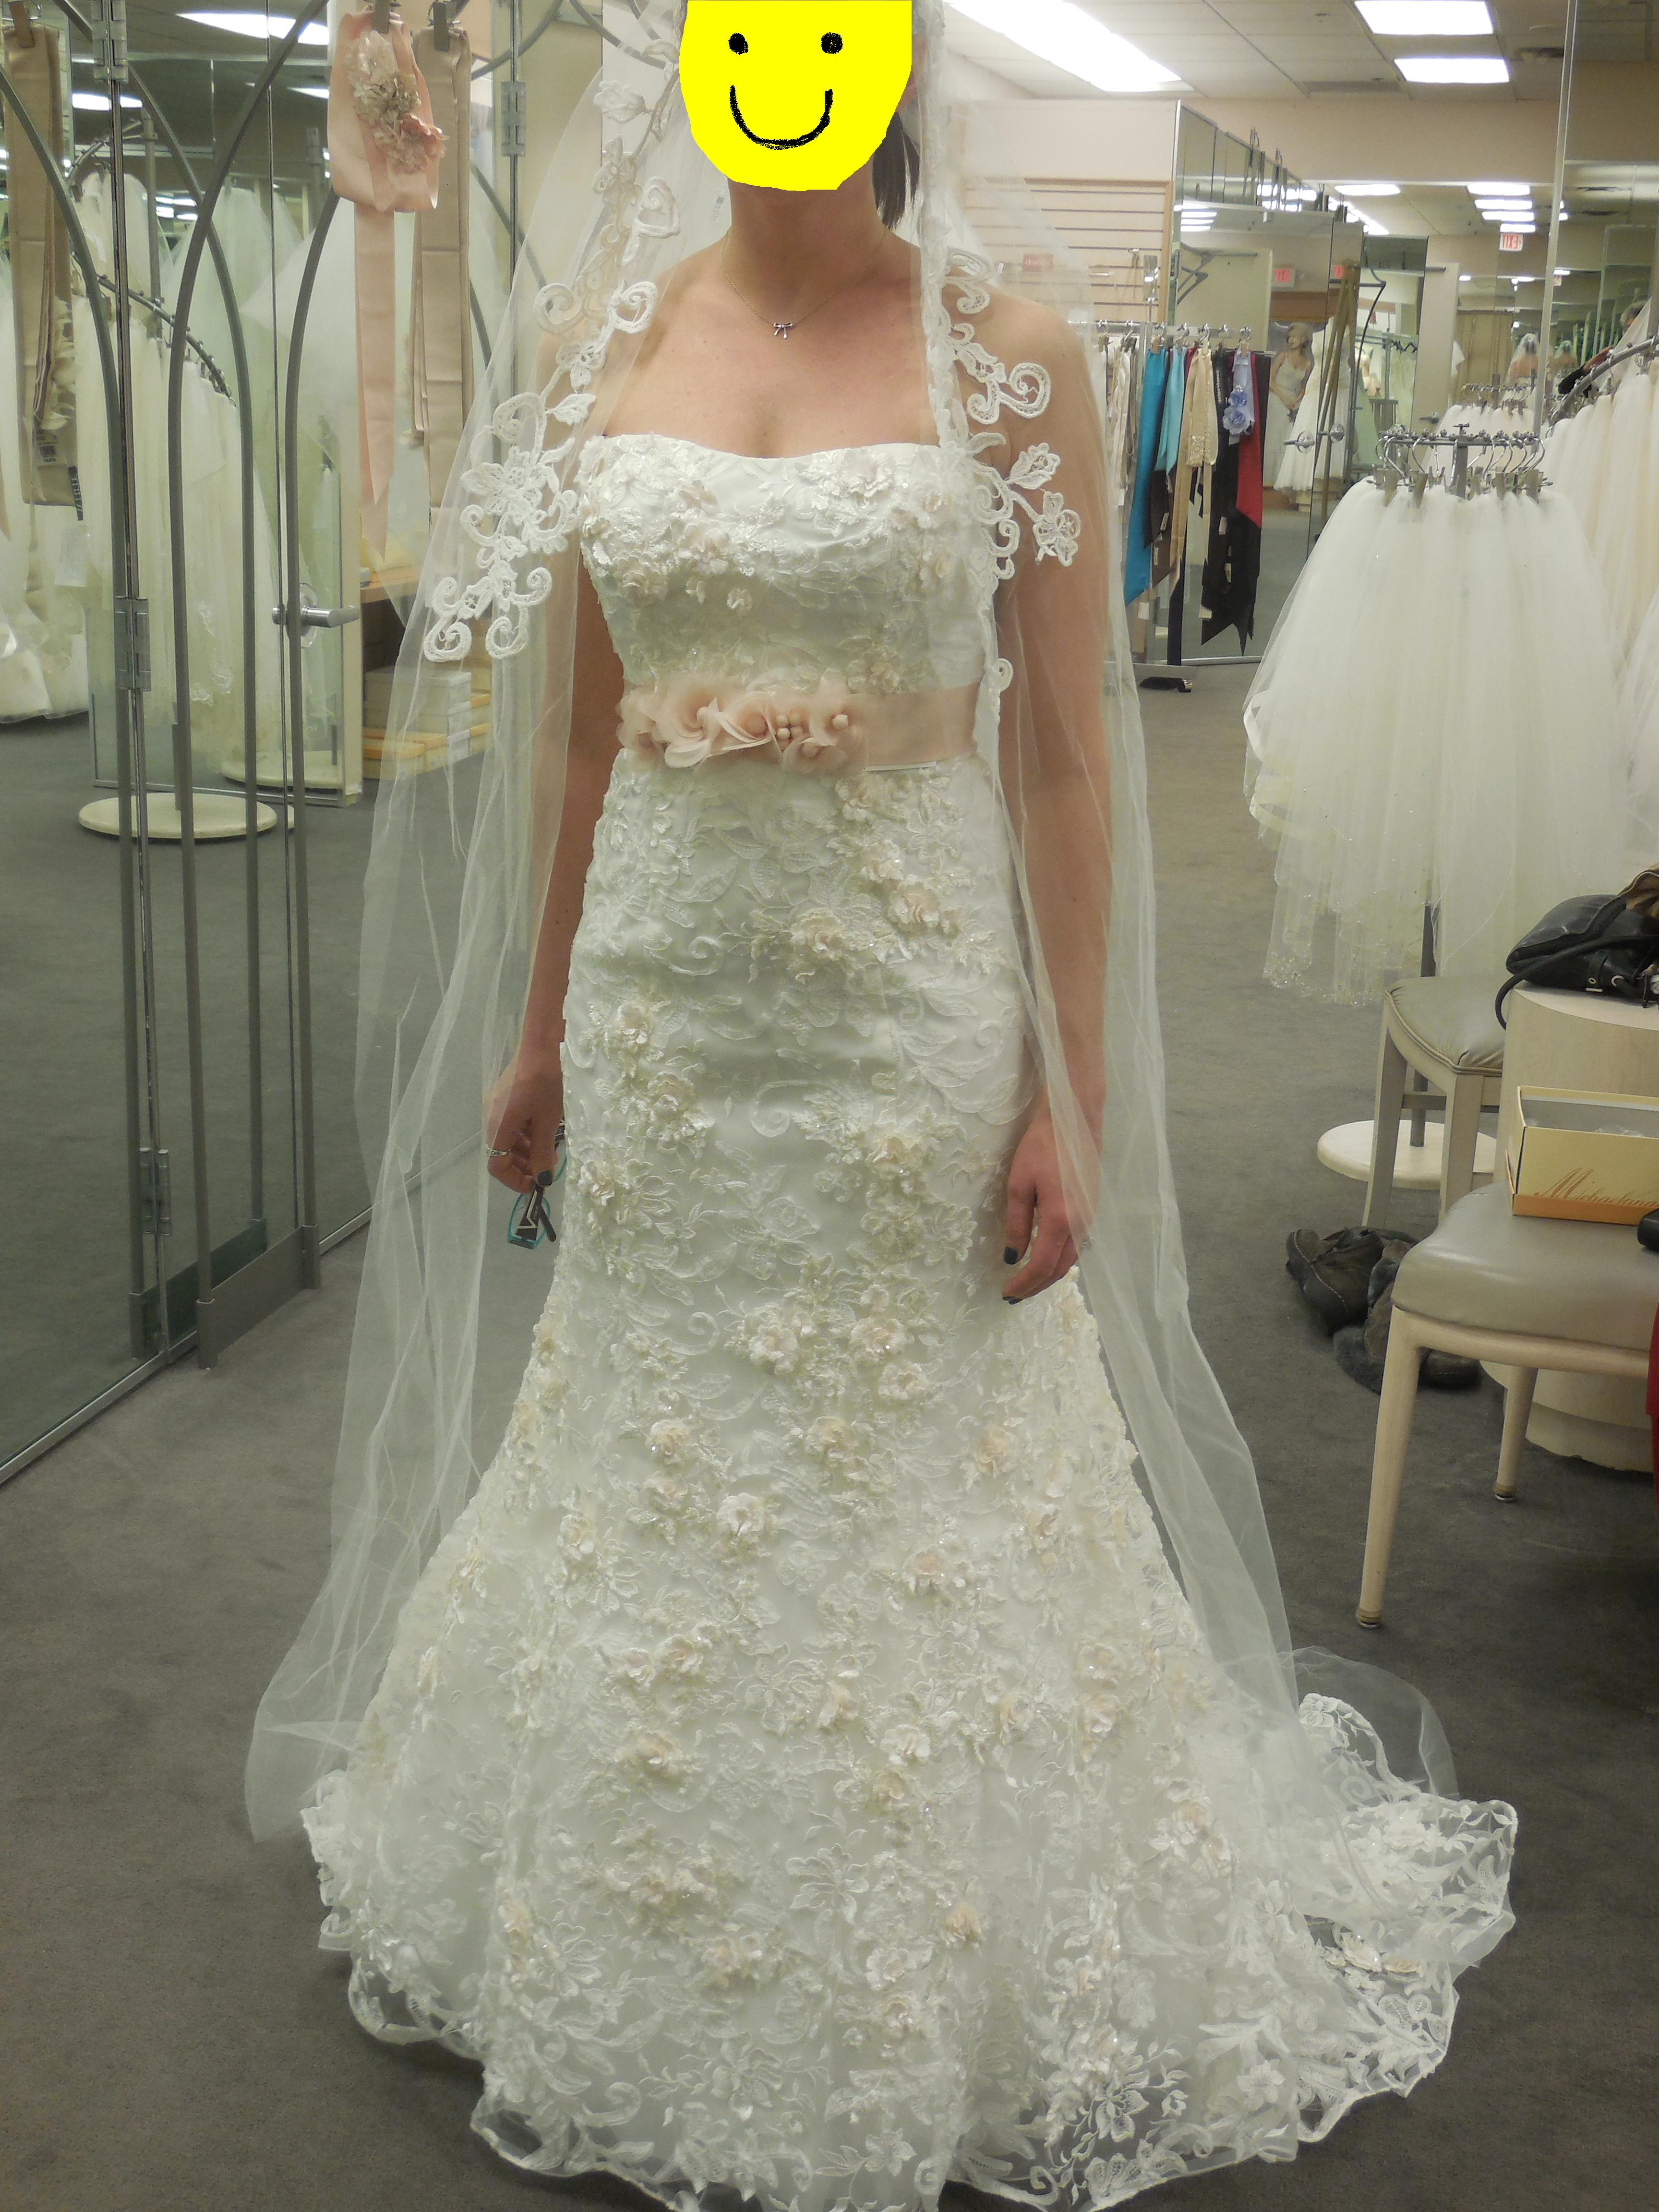 Help Wedding jewelry dress picwhat to wear Anyone have this dress